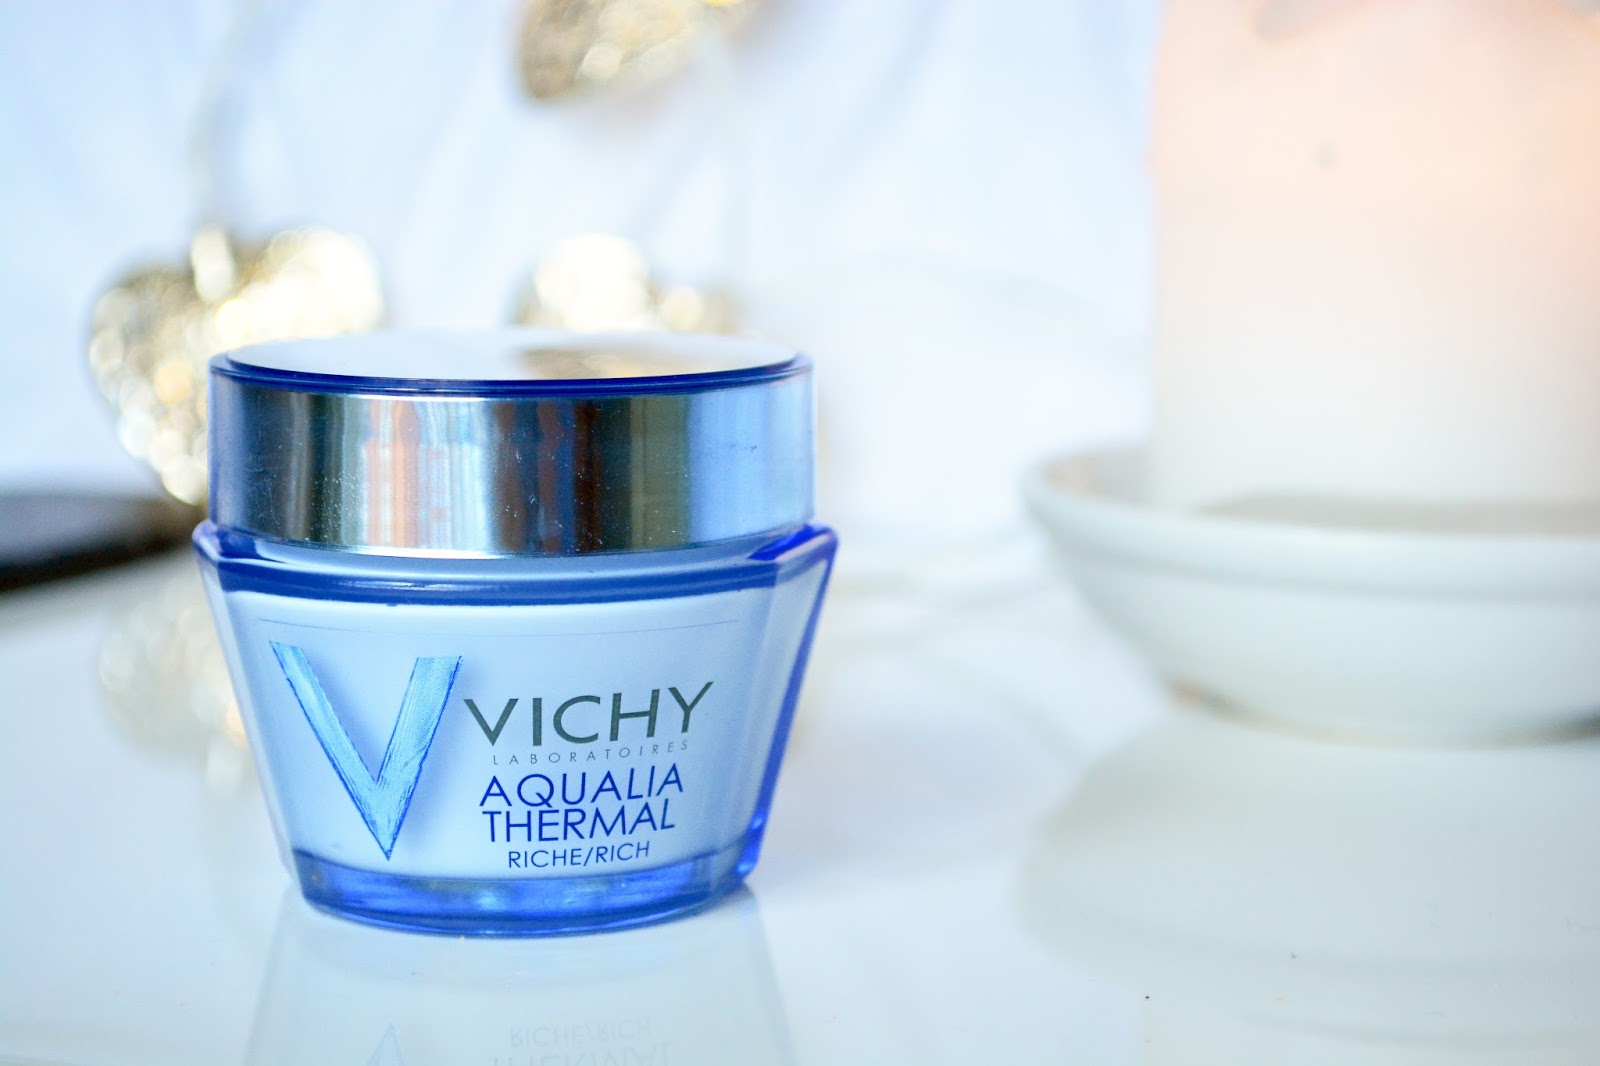 Vichy Aqualia Thermal Rich Cream, Moisturiser, Dry Skin, Hydrated Skin